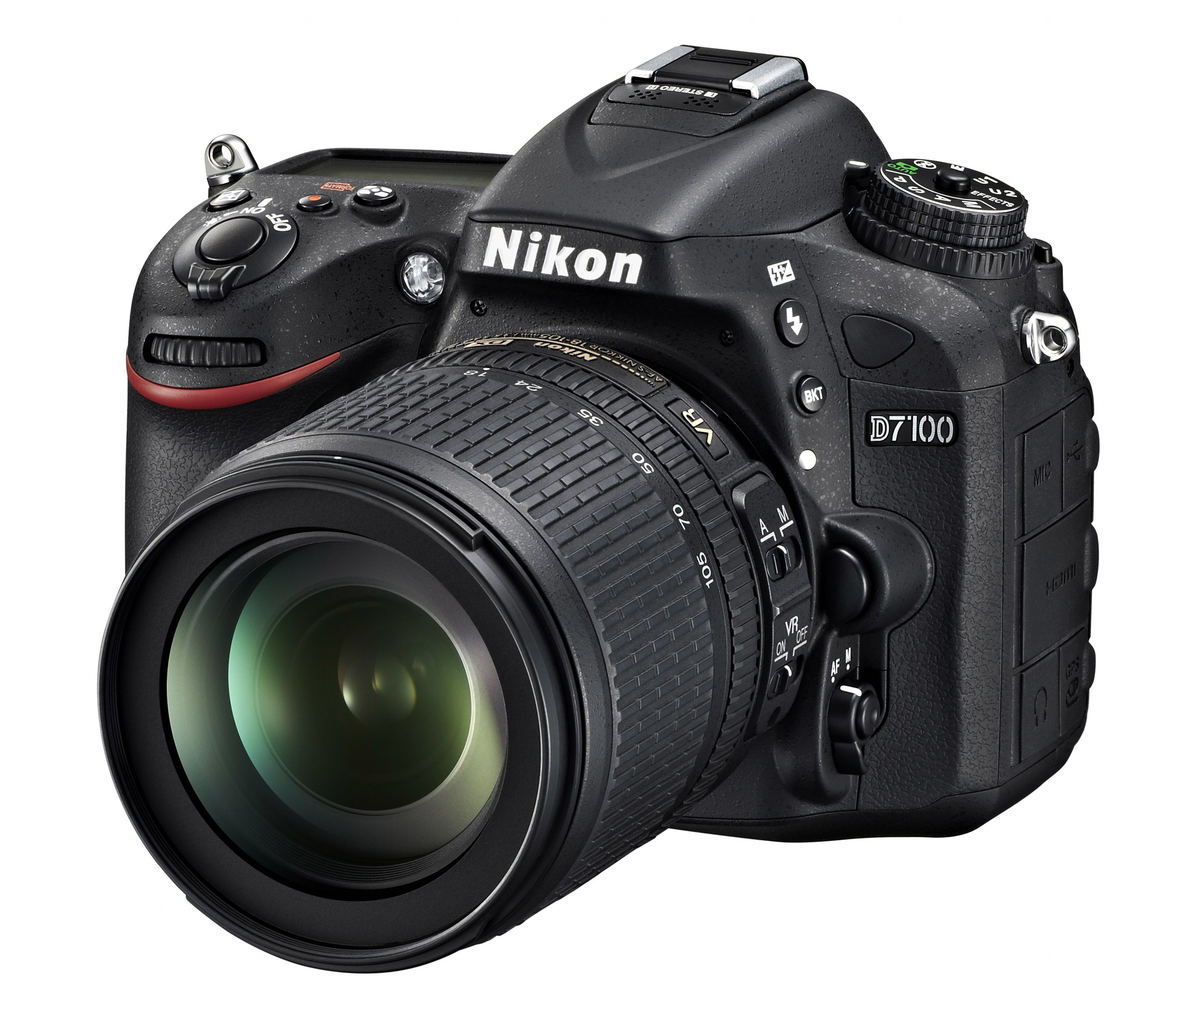 Nikon D7100 : Specifications and Opinions | JuzaPhoto